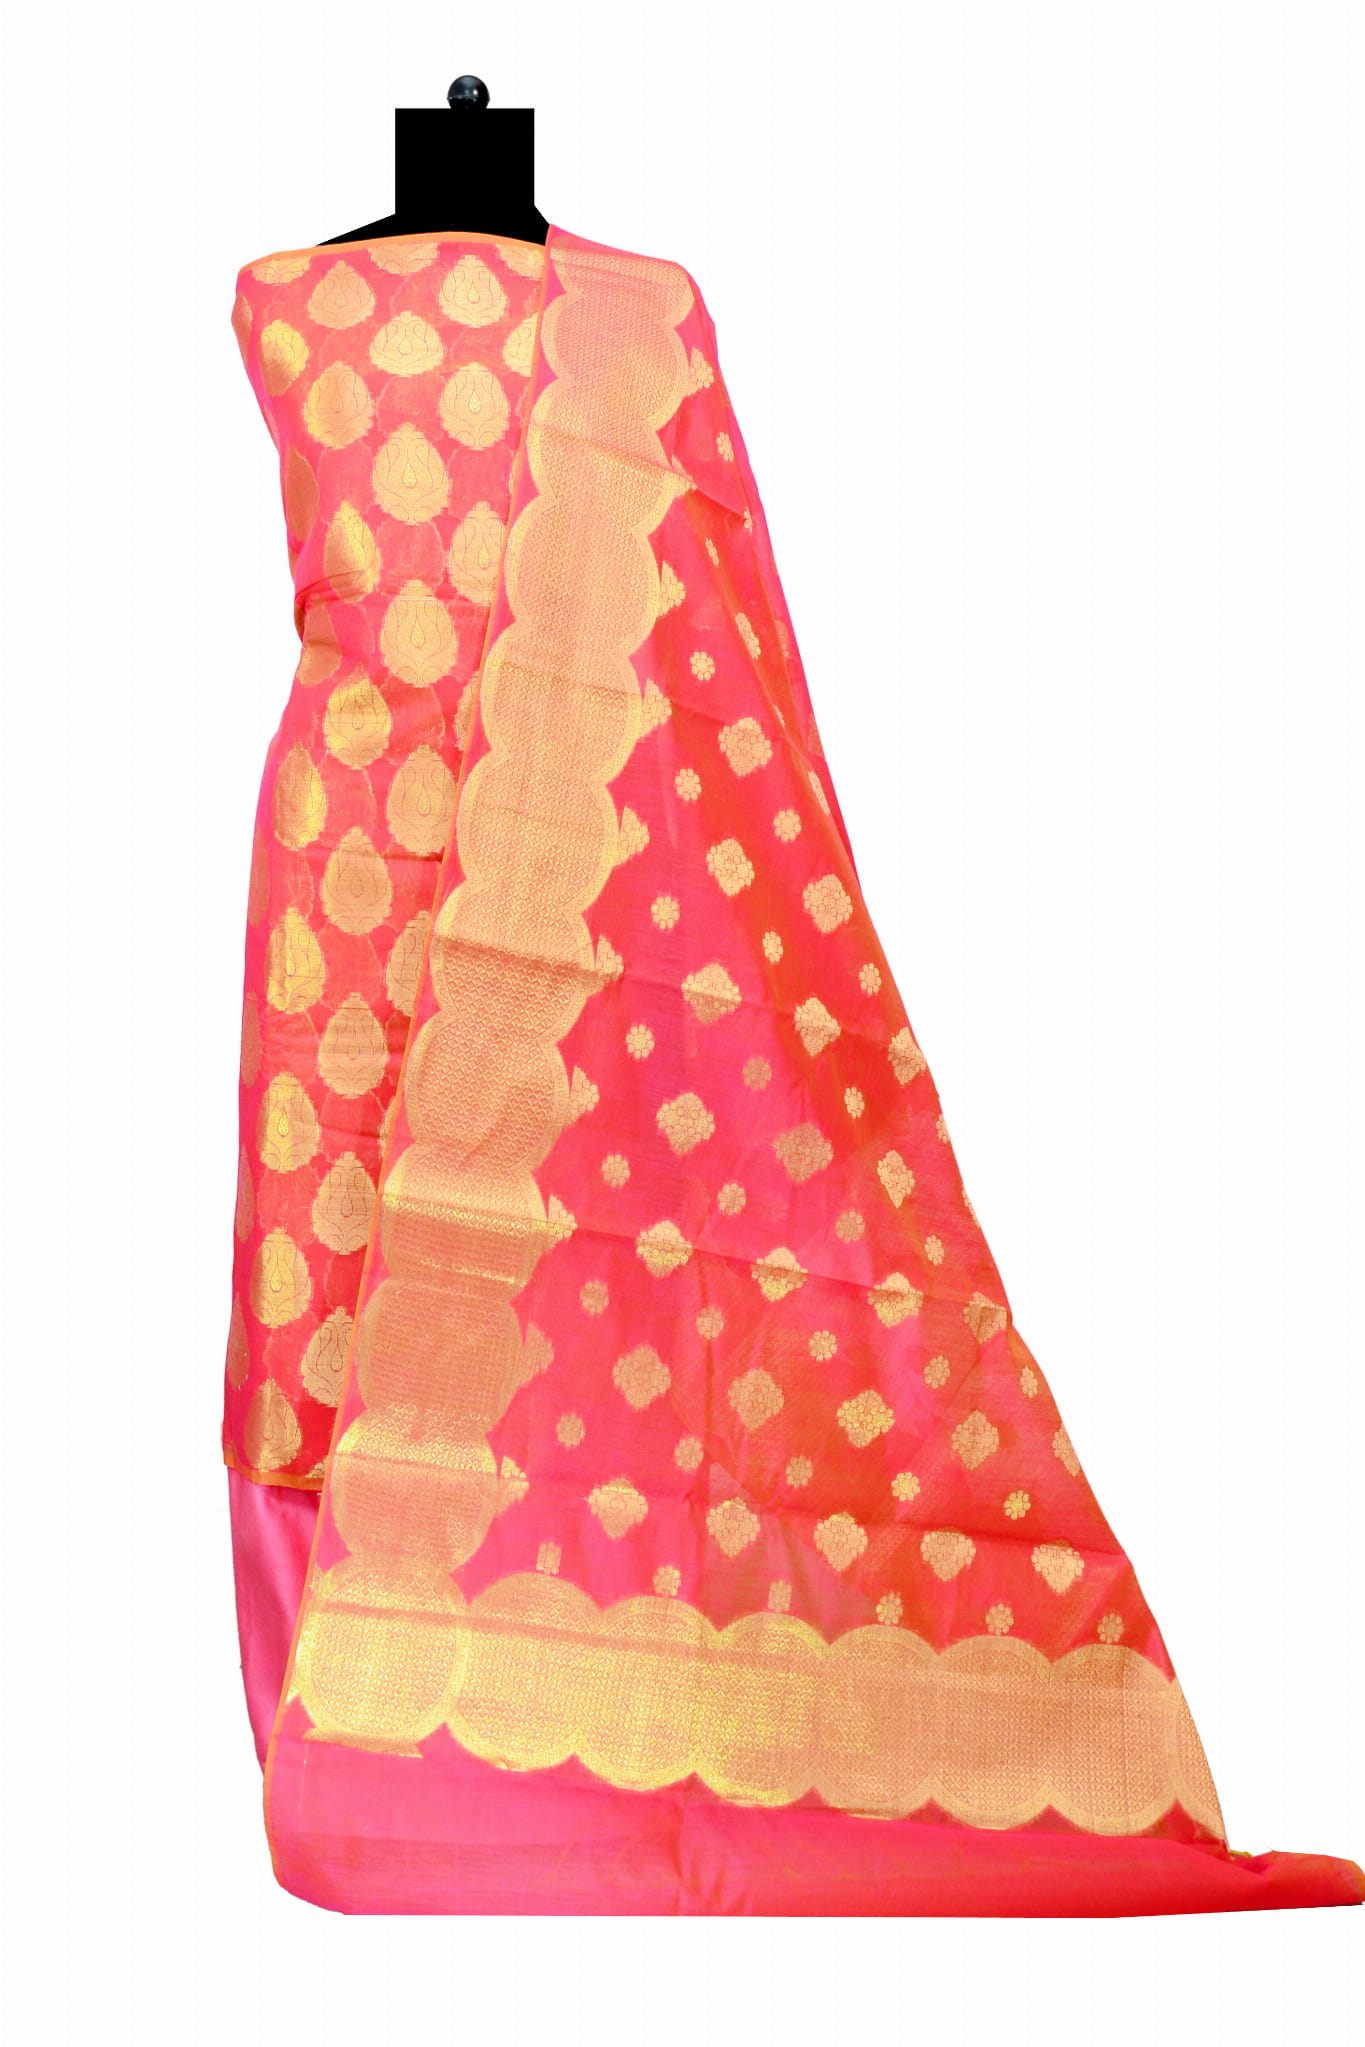 Peach Color Banarasi Suit With Booti Work